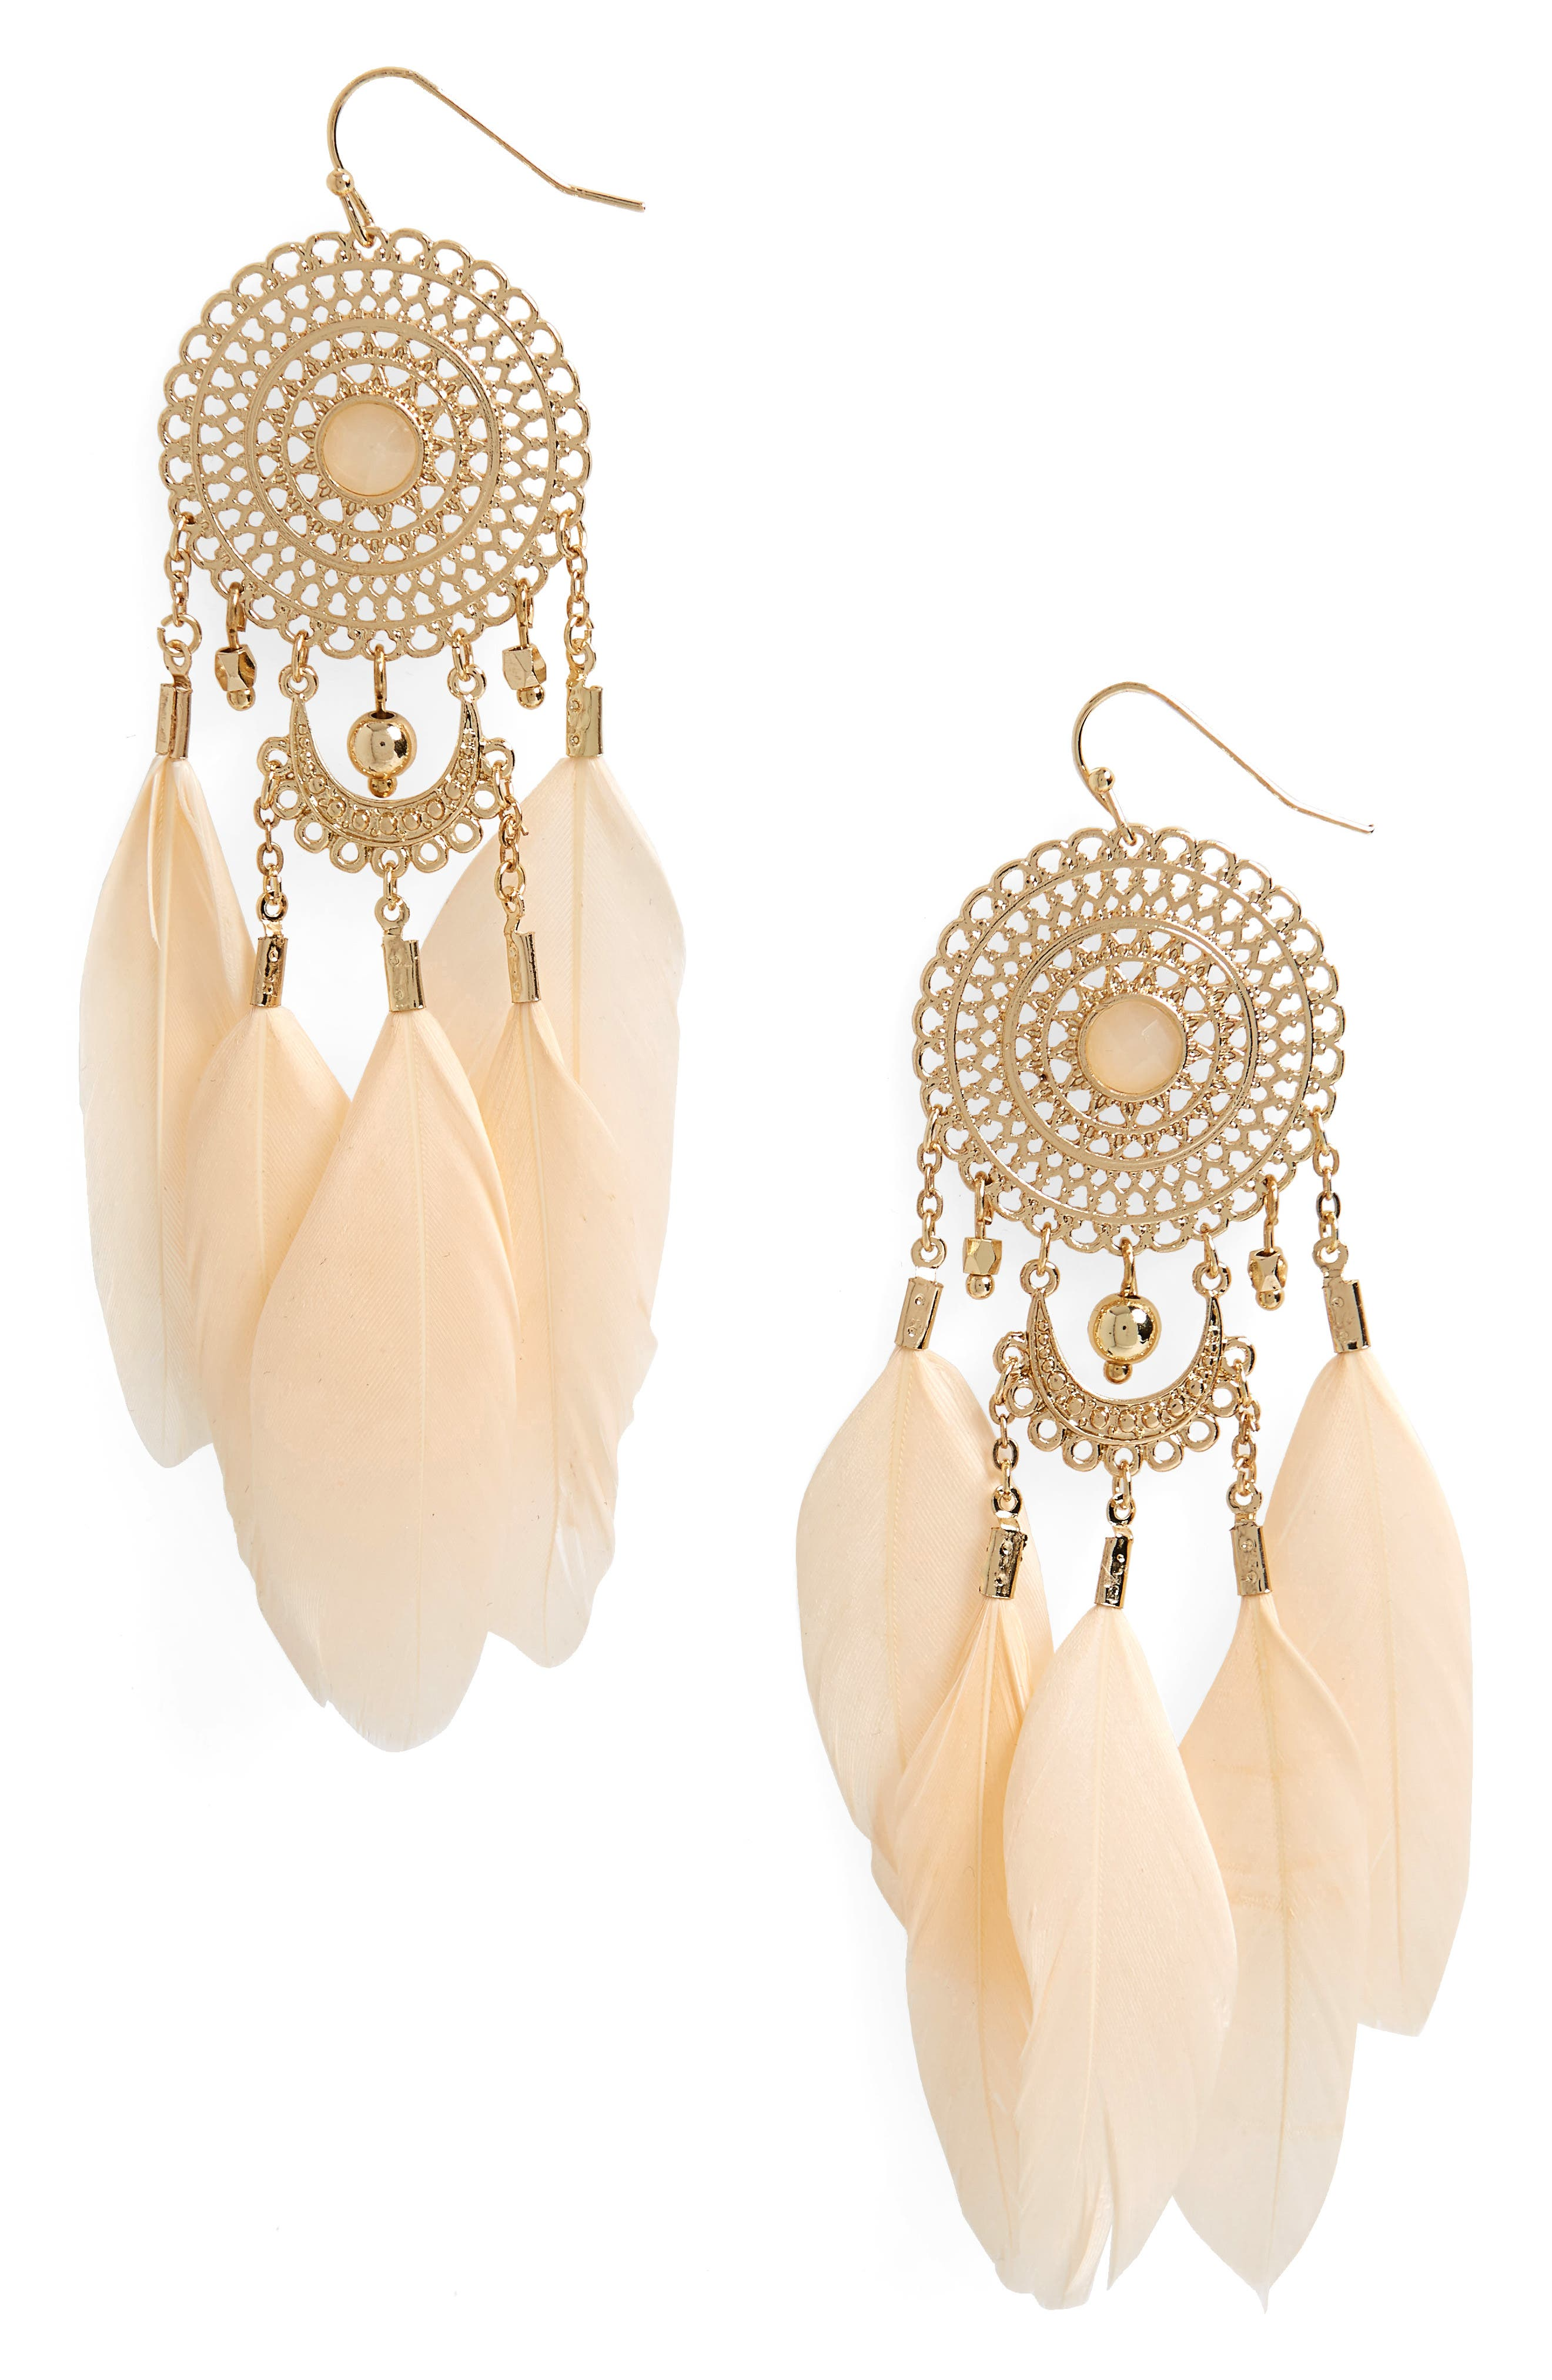 Feather Drop Earrings,                         Main,                         color, Gold/ Blush